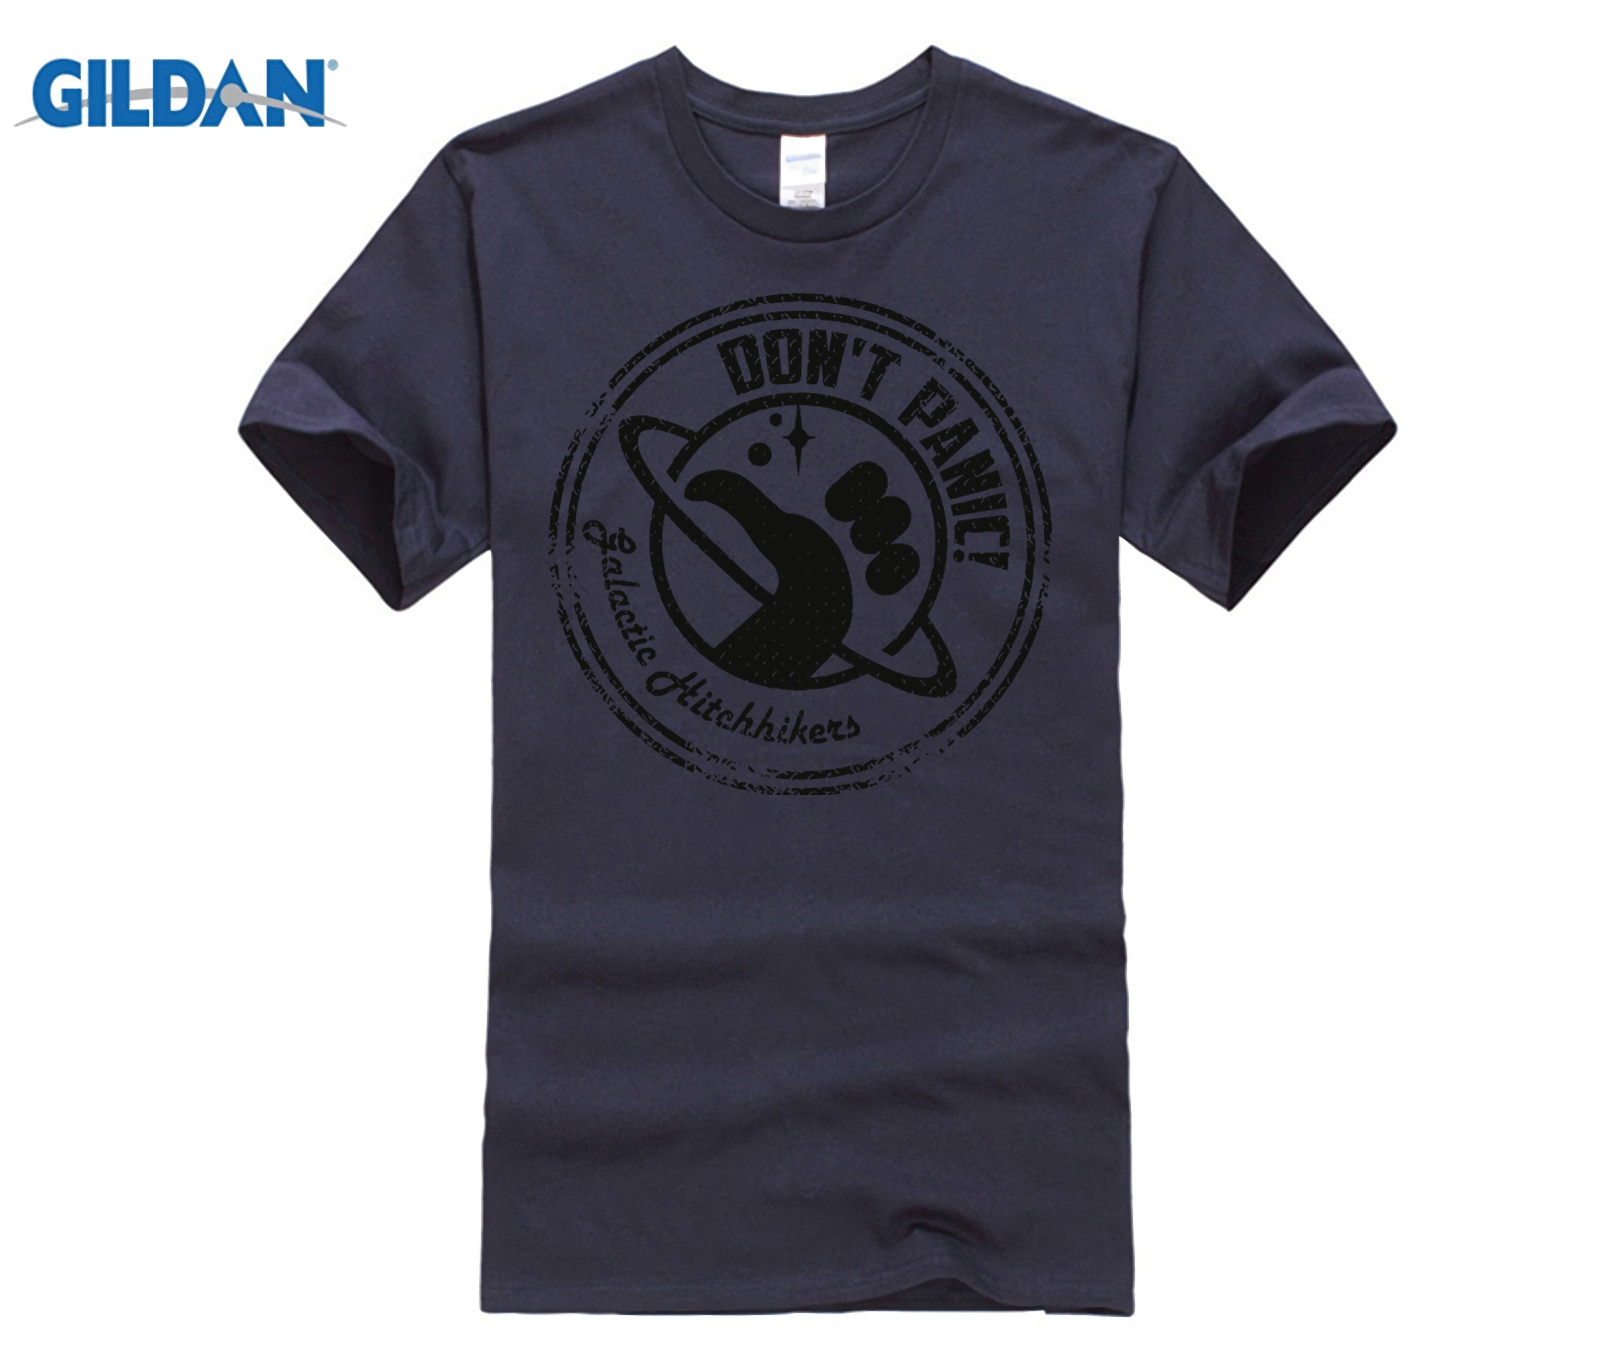 Gildan Galactic Hitchhikers Just Grate Guide To The Galaxy Mens T